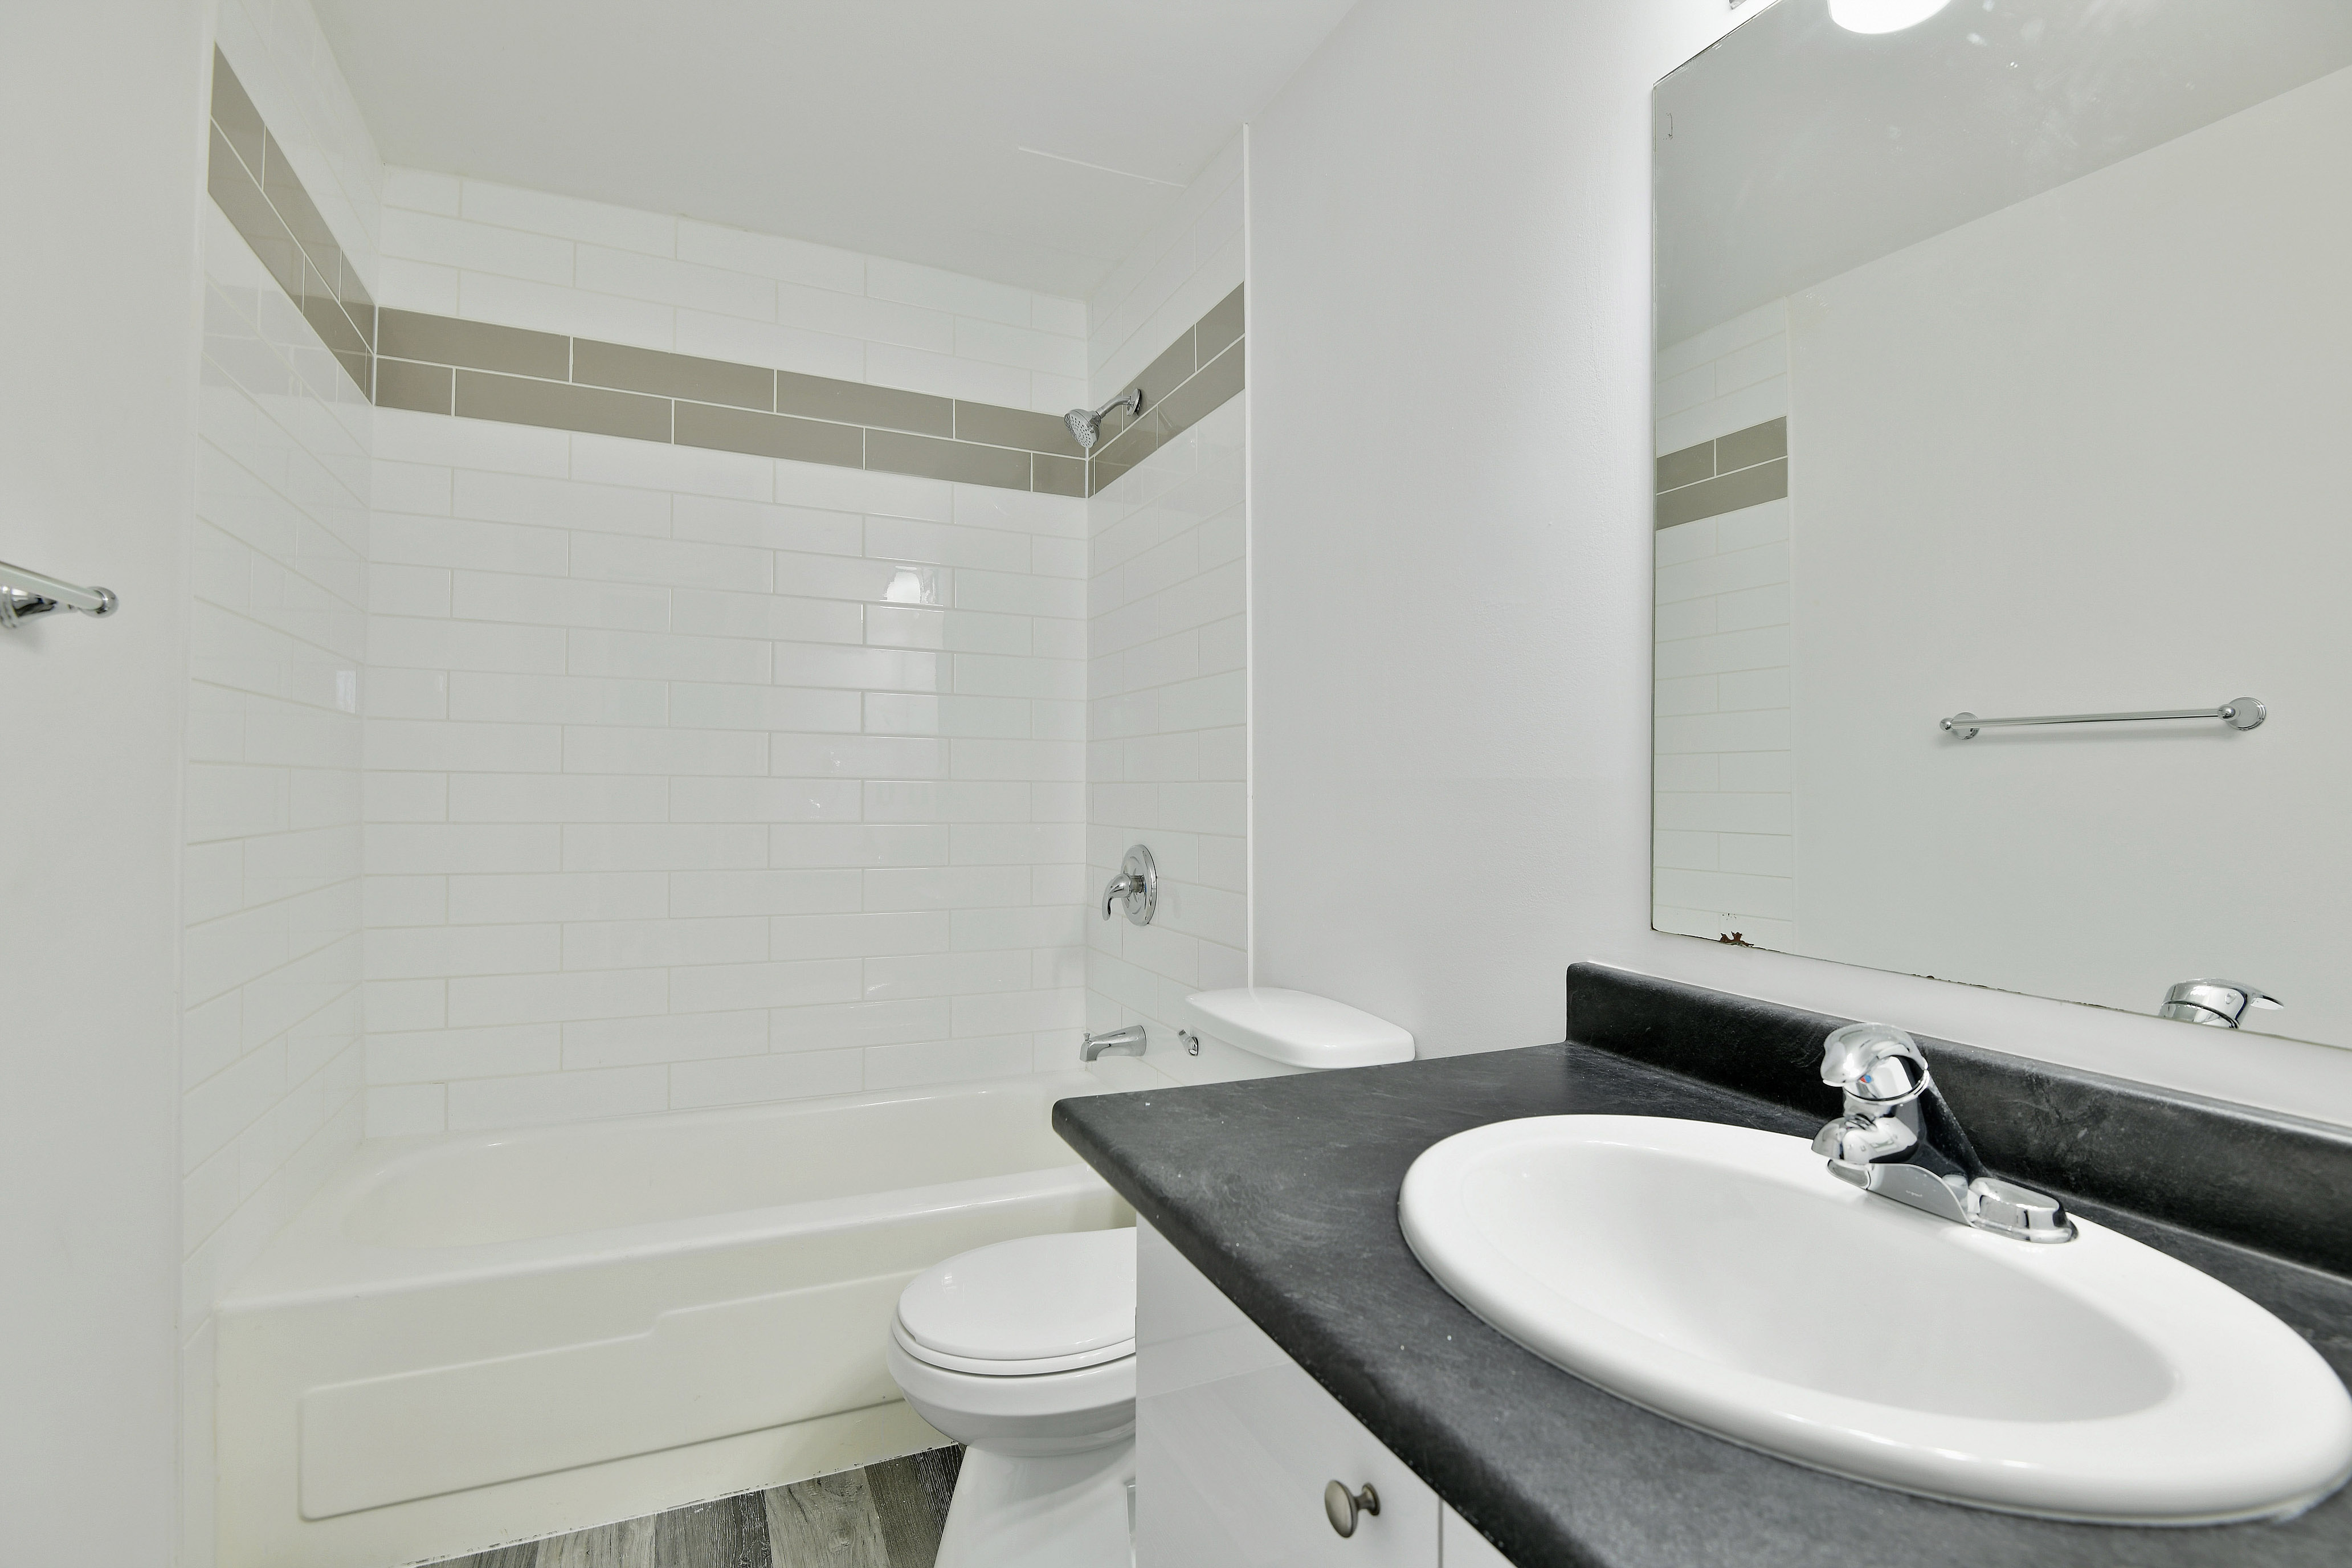 1 bedroom Apartments for rent in Gatineau-Hull at Habitat du Lac Leamy - Photo 06 - RentQuebecApartments – L401592